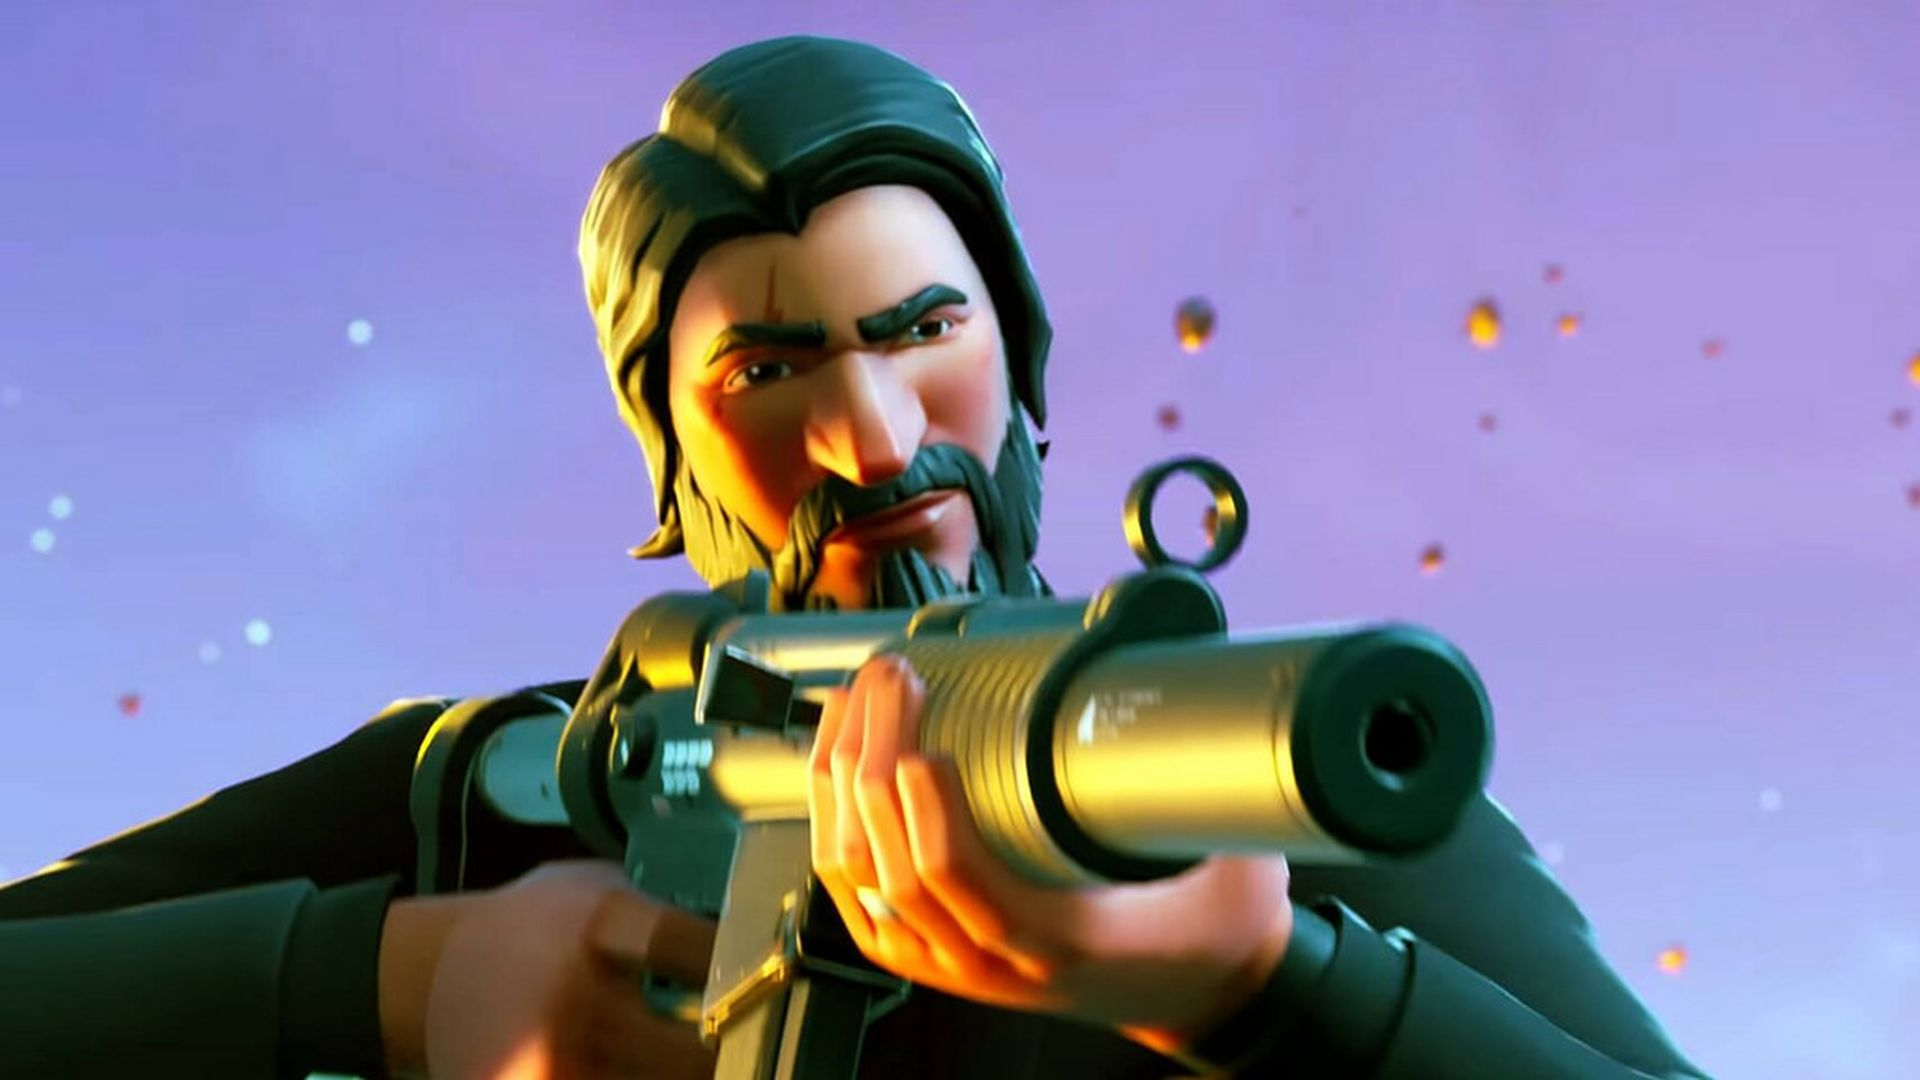 A streamer spent 16 hours helping young Fortnite players earn John Wick umbrellas